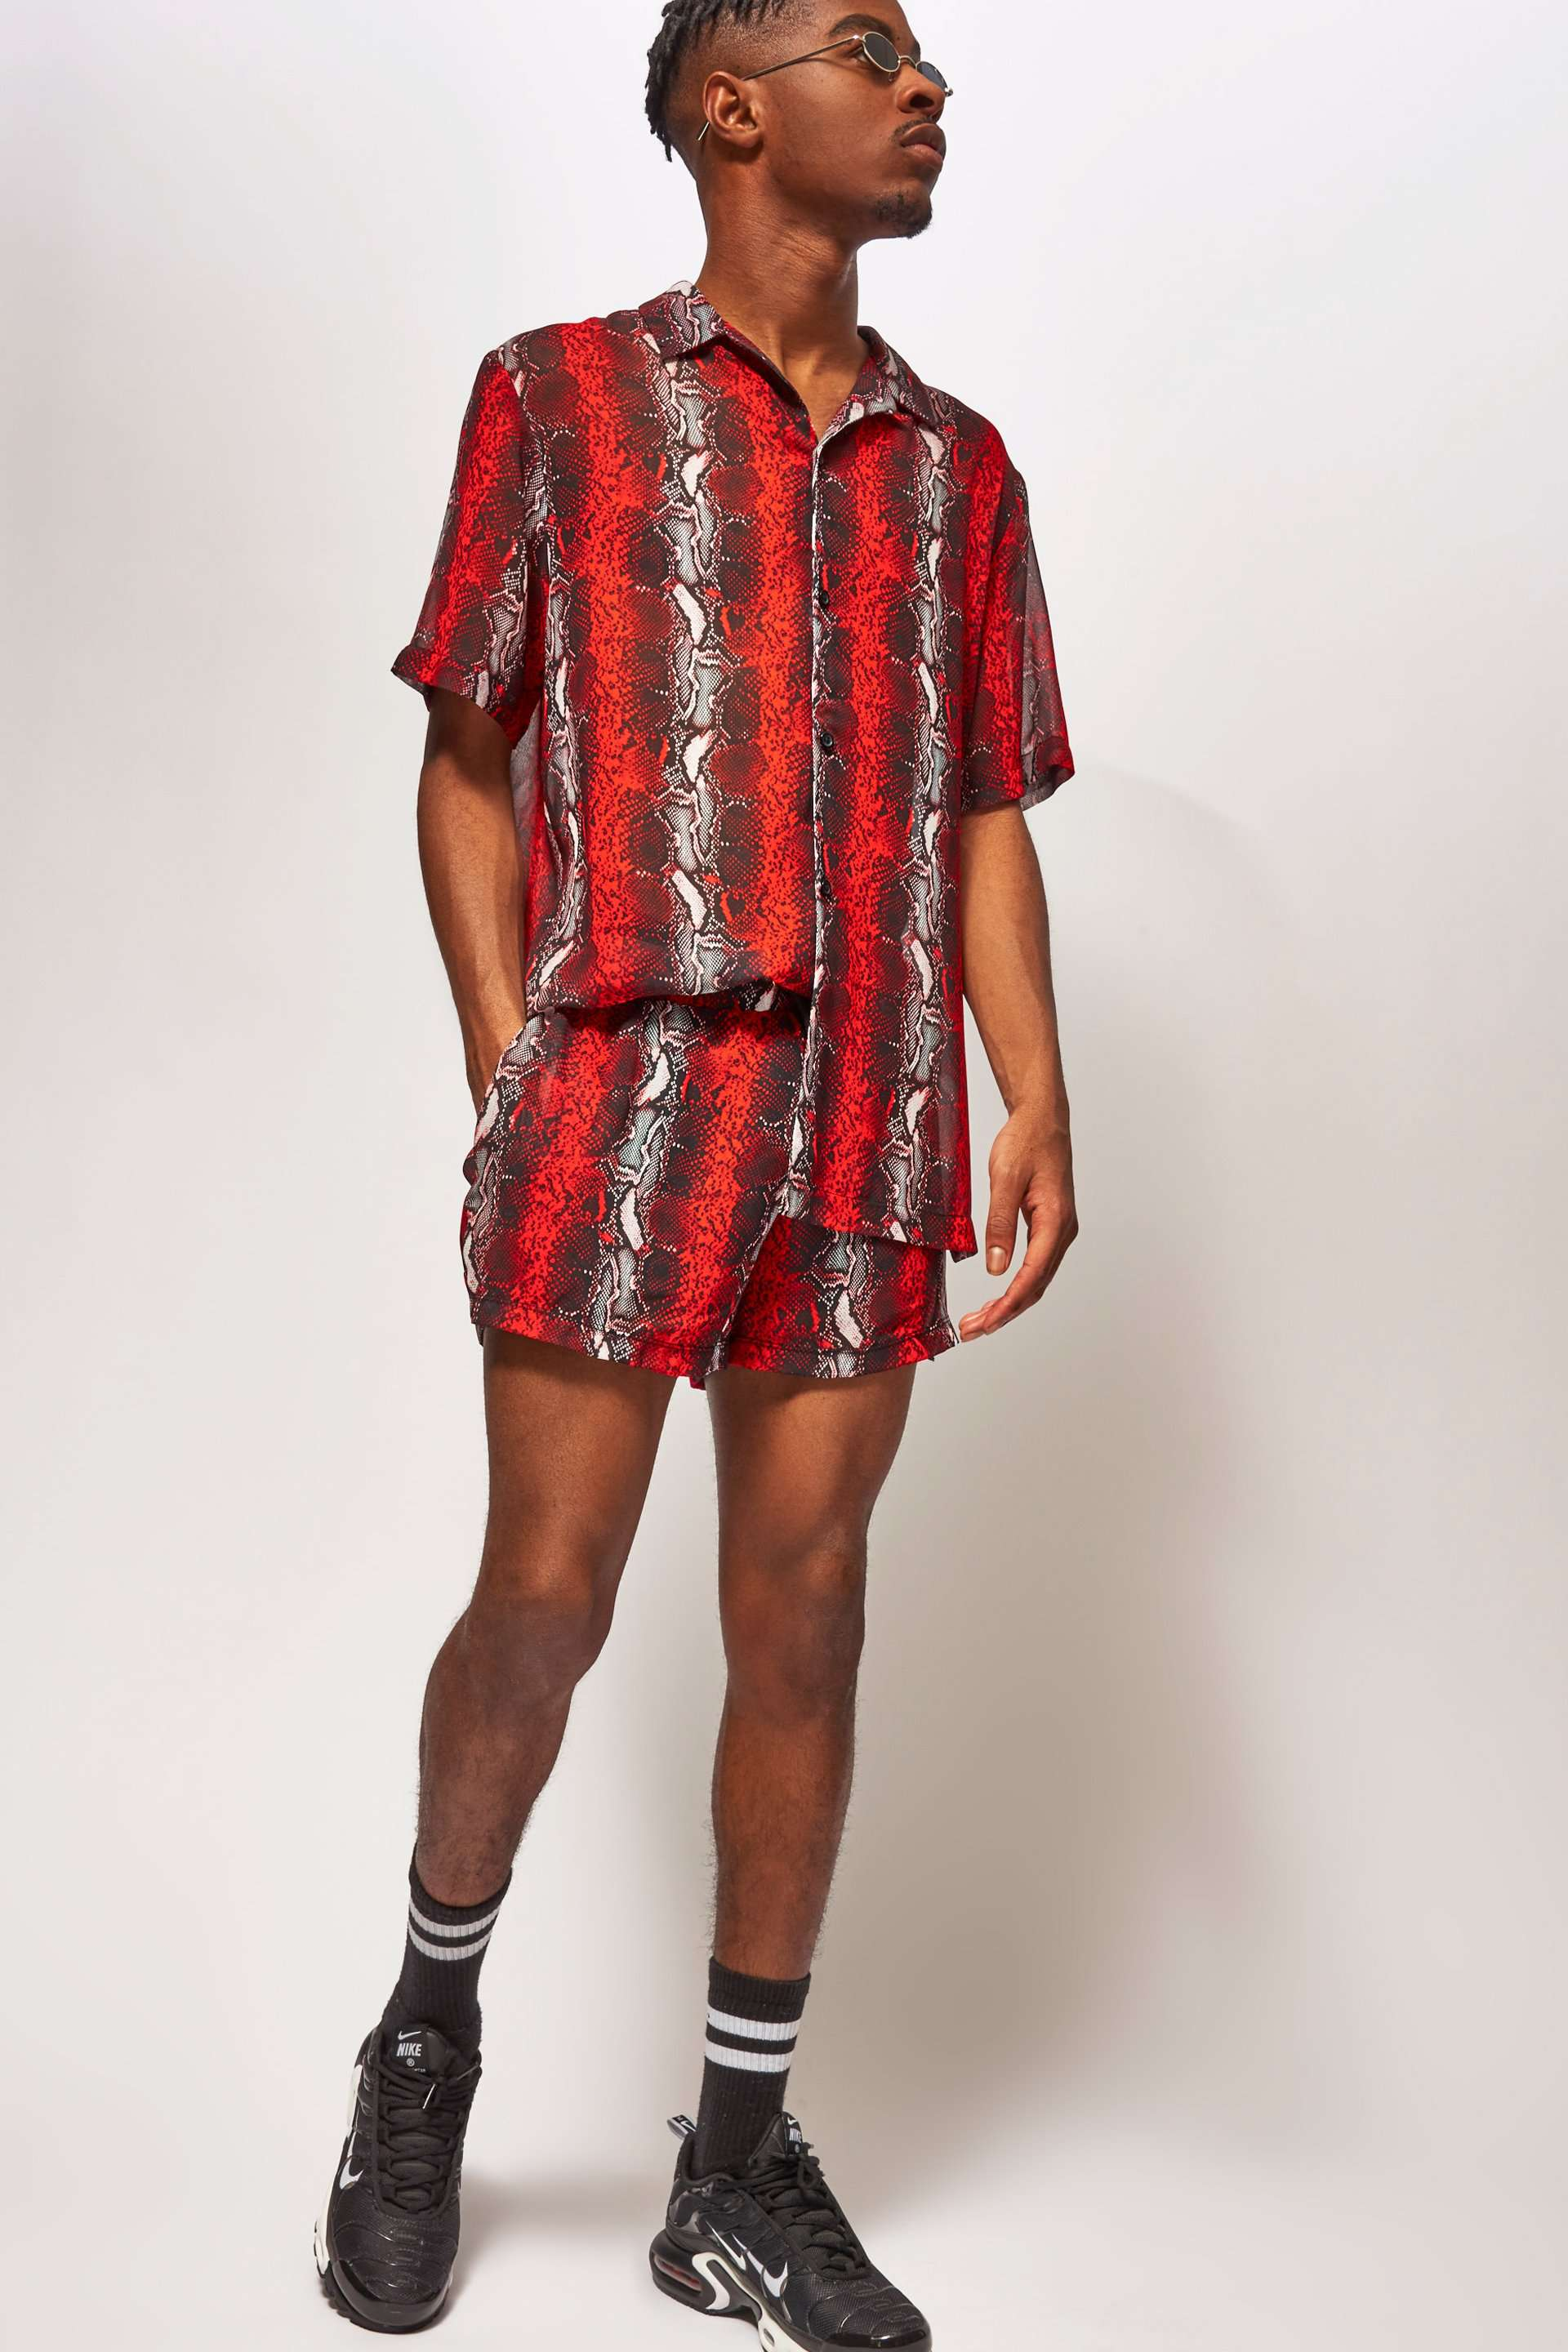 Snake Print Shirt In Sheer Fabric